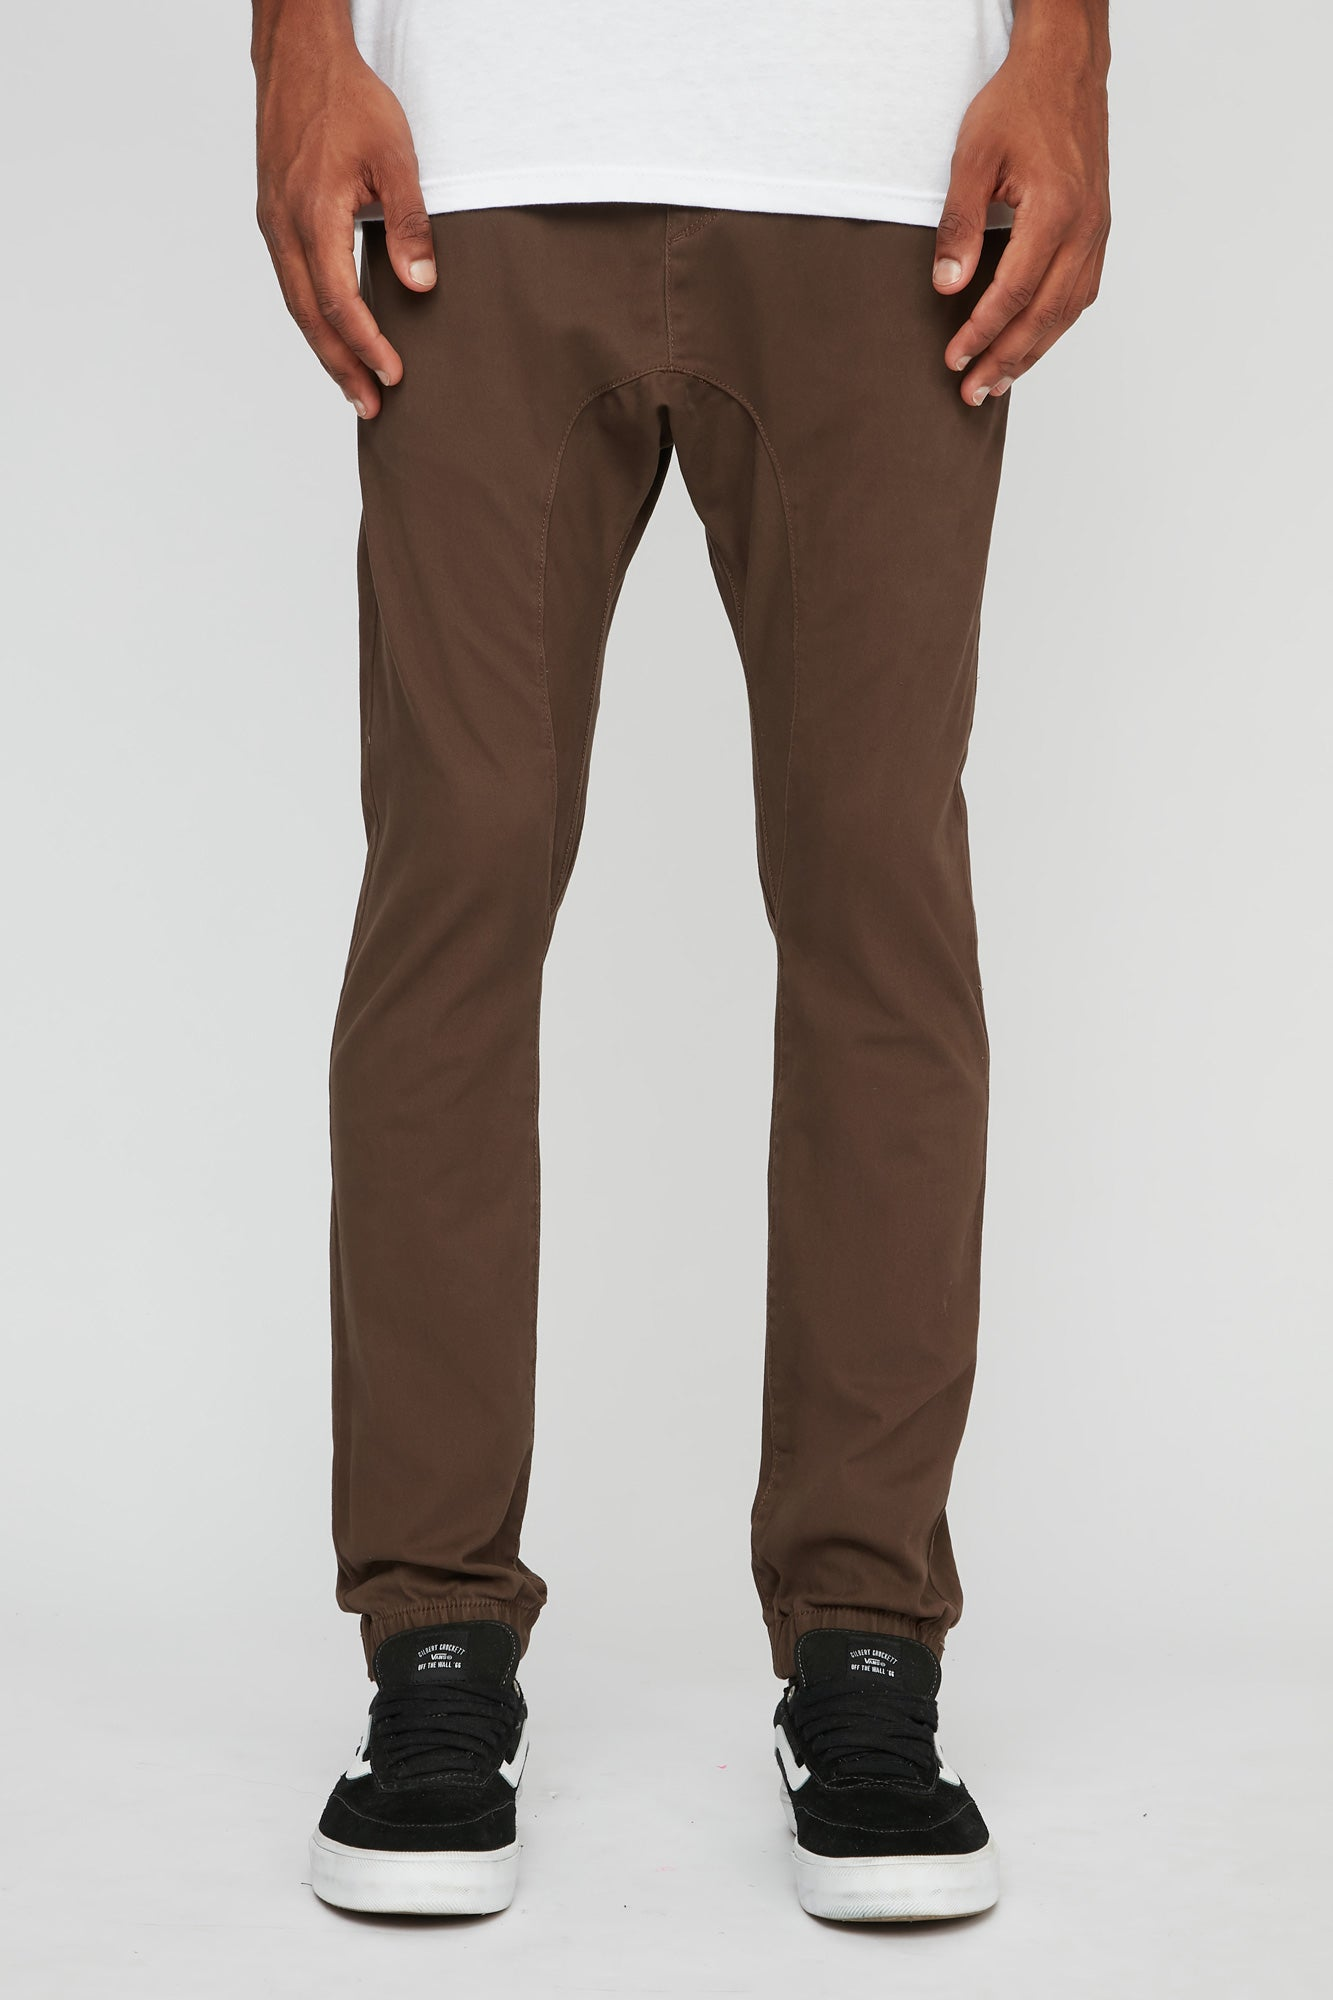 Zoo York Mens 5 Pocket Joggers